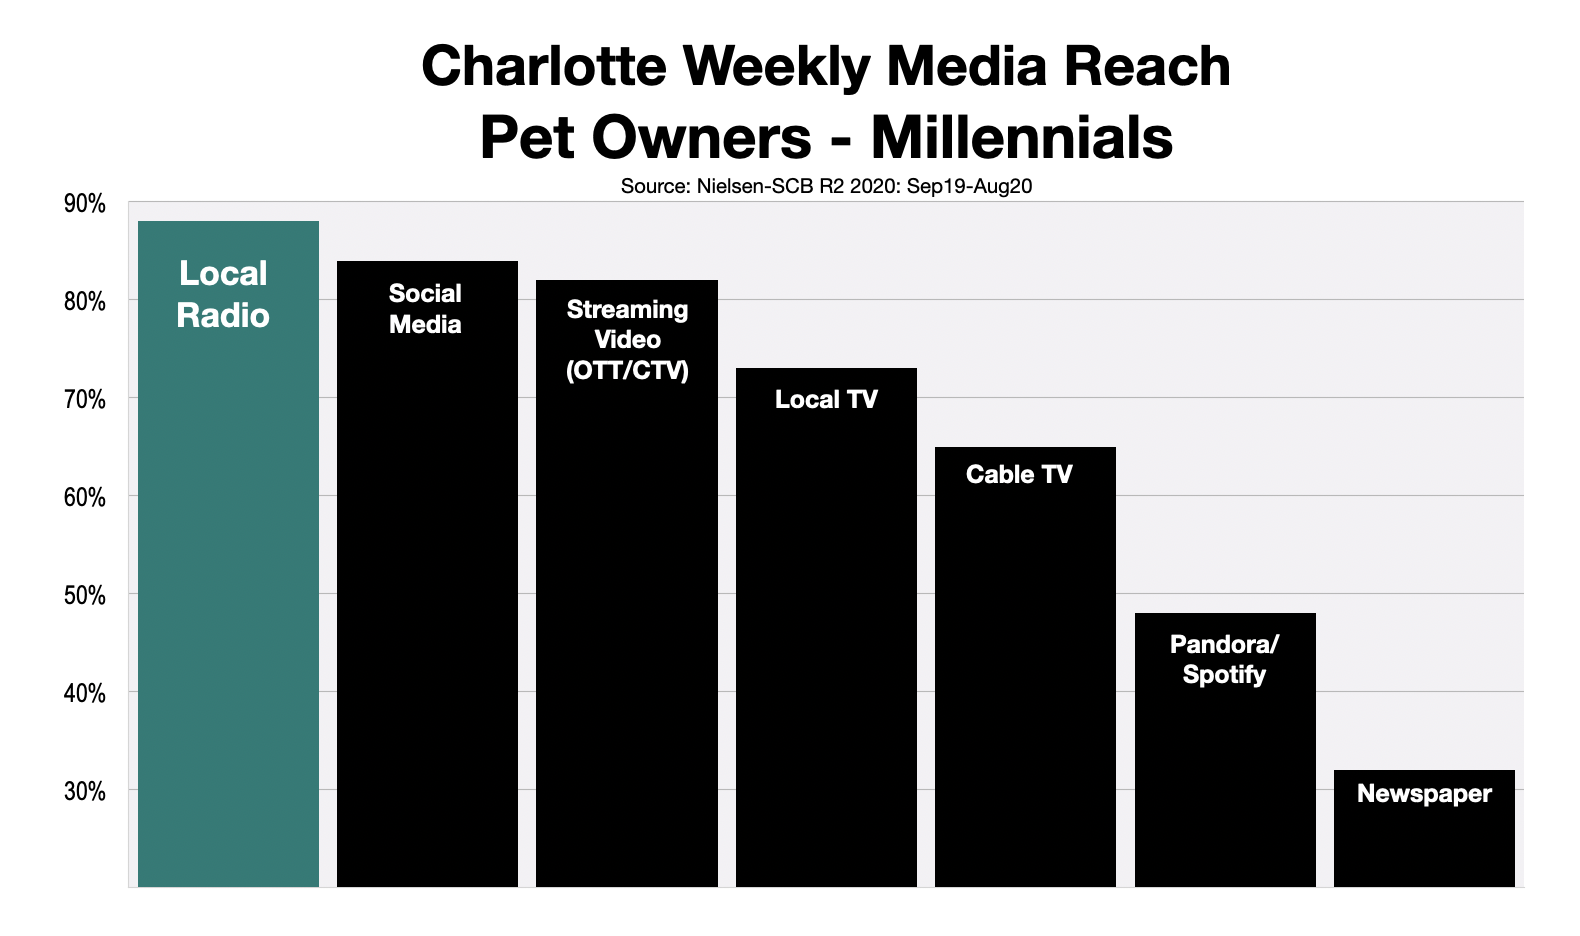 Advertise To Millennials In Charlotte: Pet Owners